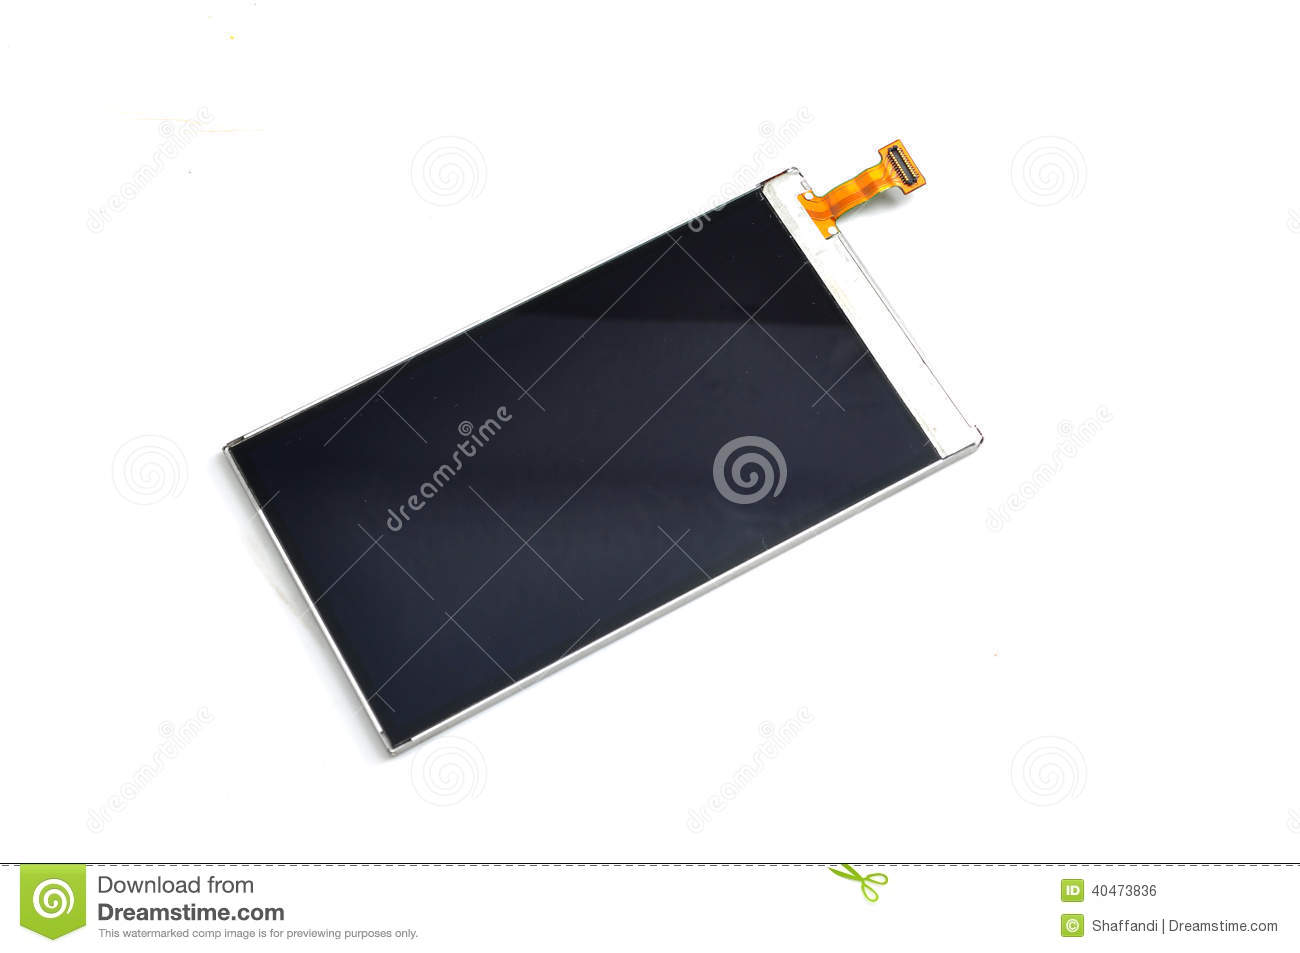 Replacing mobile screen